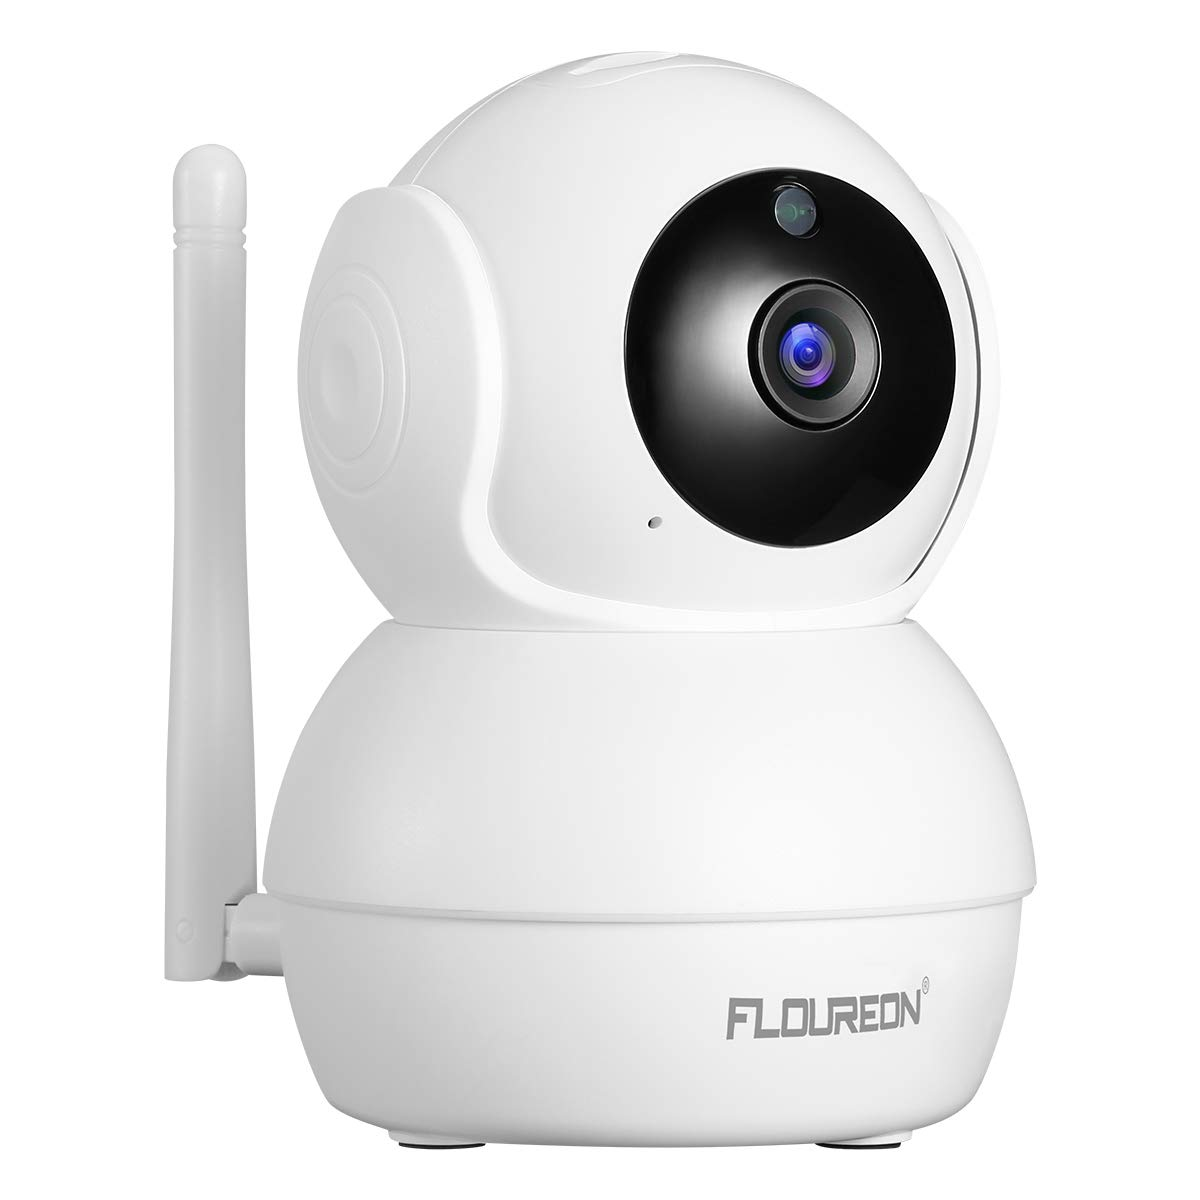 FLOUREON Wireless Security Camera 2.0MP, 1080P HD WiFi Camera Indoor, Home Security Camera CCTV with Pan/Tilt Human Motion Detection Two-Way Audio Night Vision Auto Tracking Remote Access